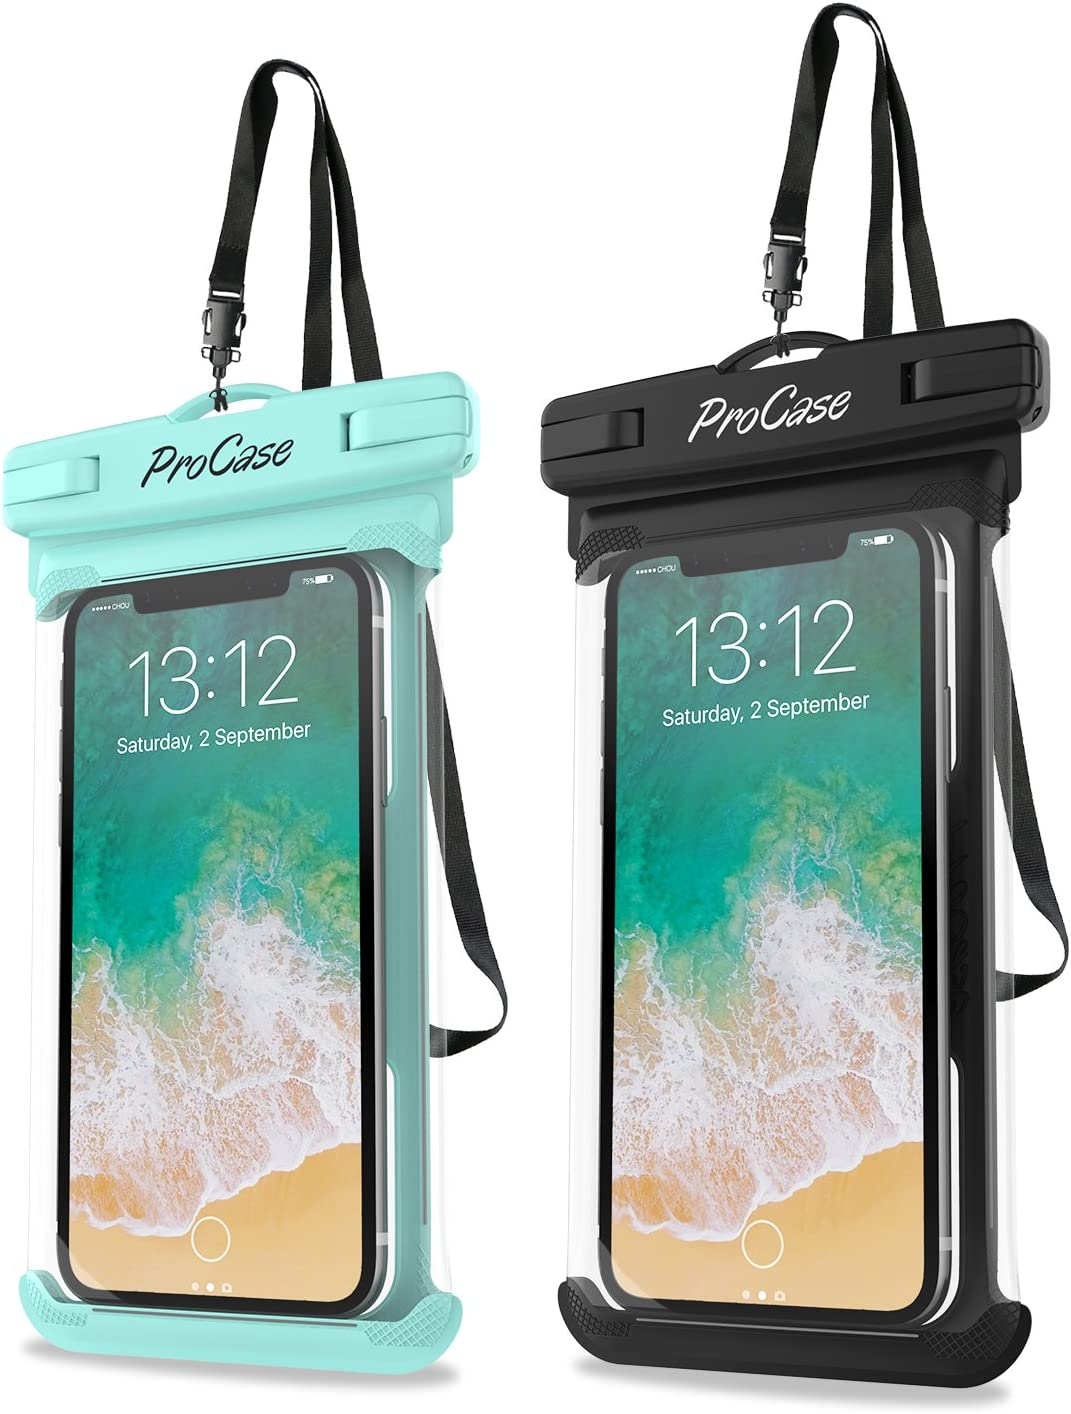 ProCase Universal Waterproof Case Cellphone Dry Bag Pouch for iPhone 13 Pro Max 13 Mini, 12 11 Pro Max Xs Max XR XS X 8 7 6S Plus SE, Galaxy S20 Ultra S10 S9 S8/Note 10 9 up to 7